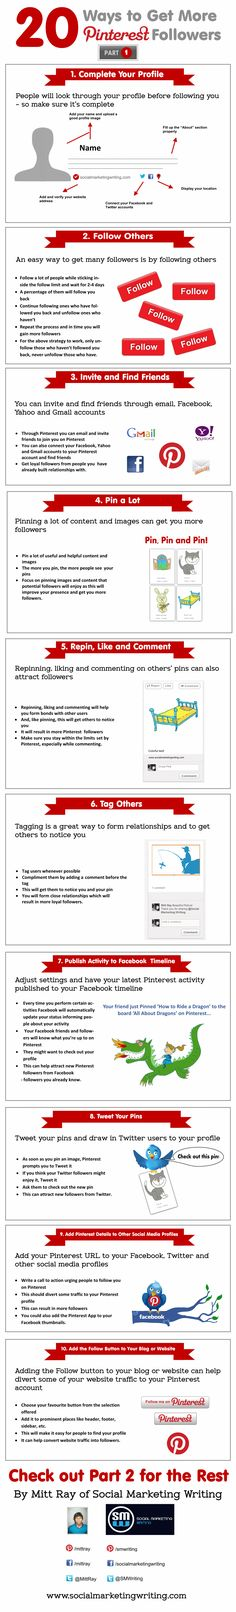 20 Ways to Get More #Pinterest Followers (Part I) #socialmedia